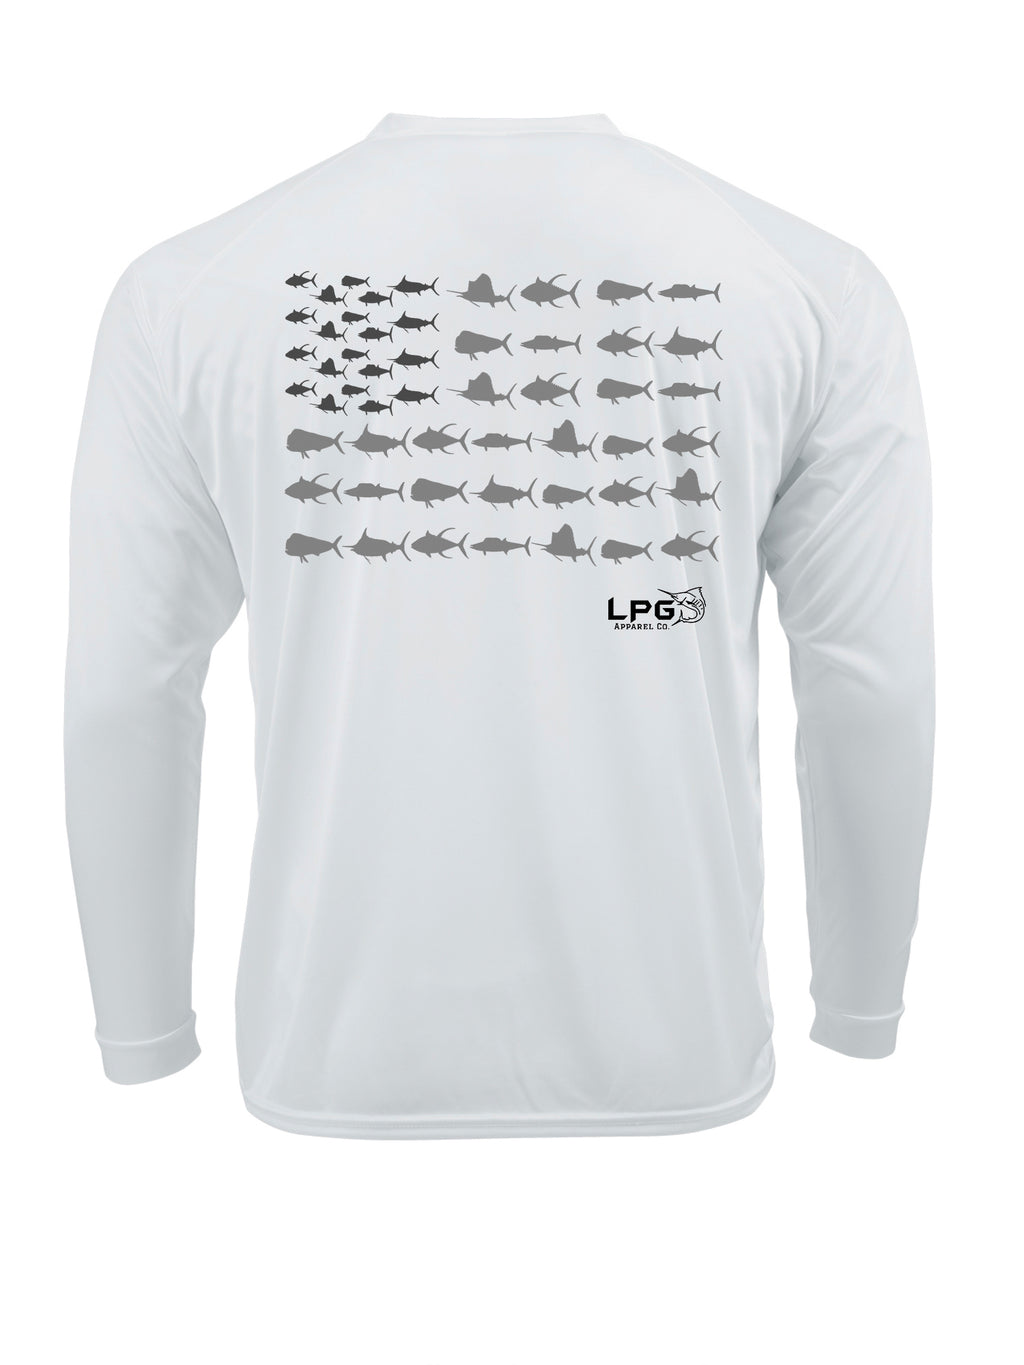 LPG Americano Patriotic Big Game Fish Edition Long Sleeve Performance UPF 50+  T-Shirt